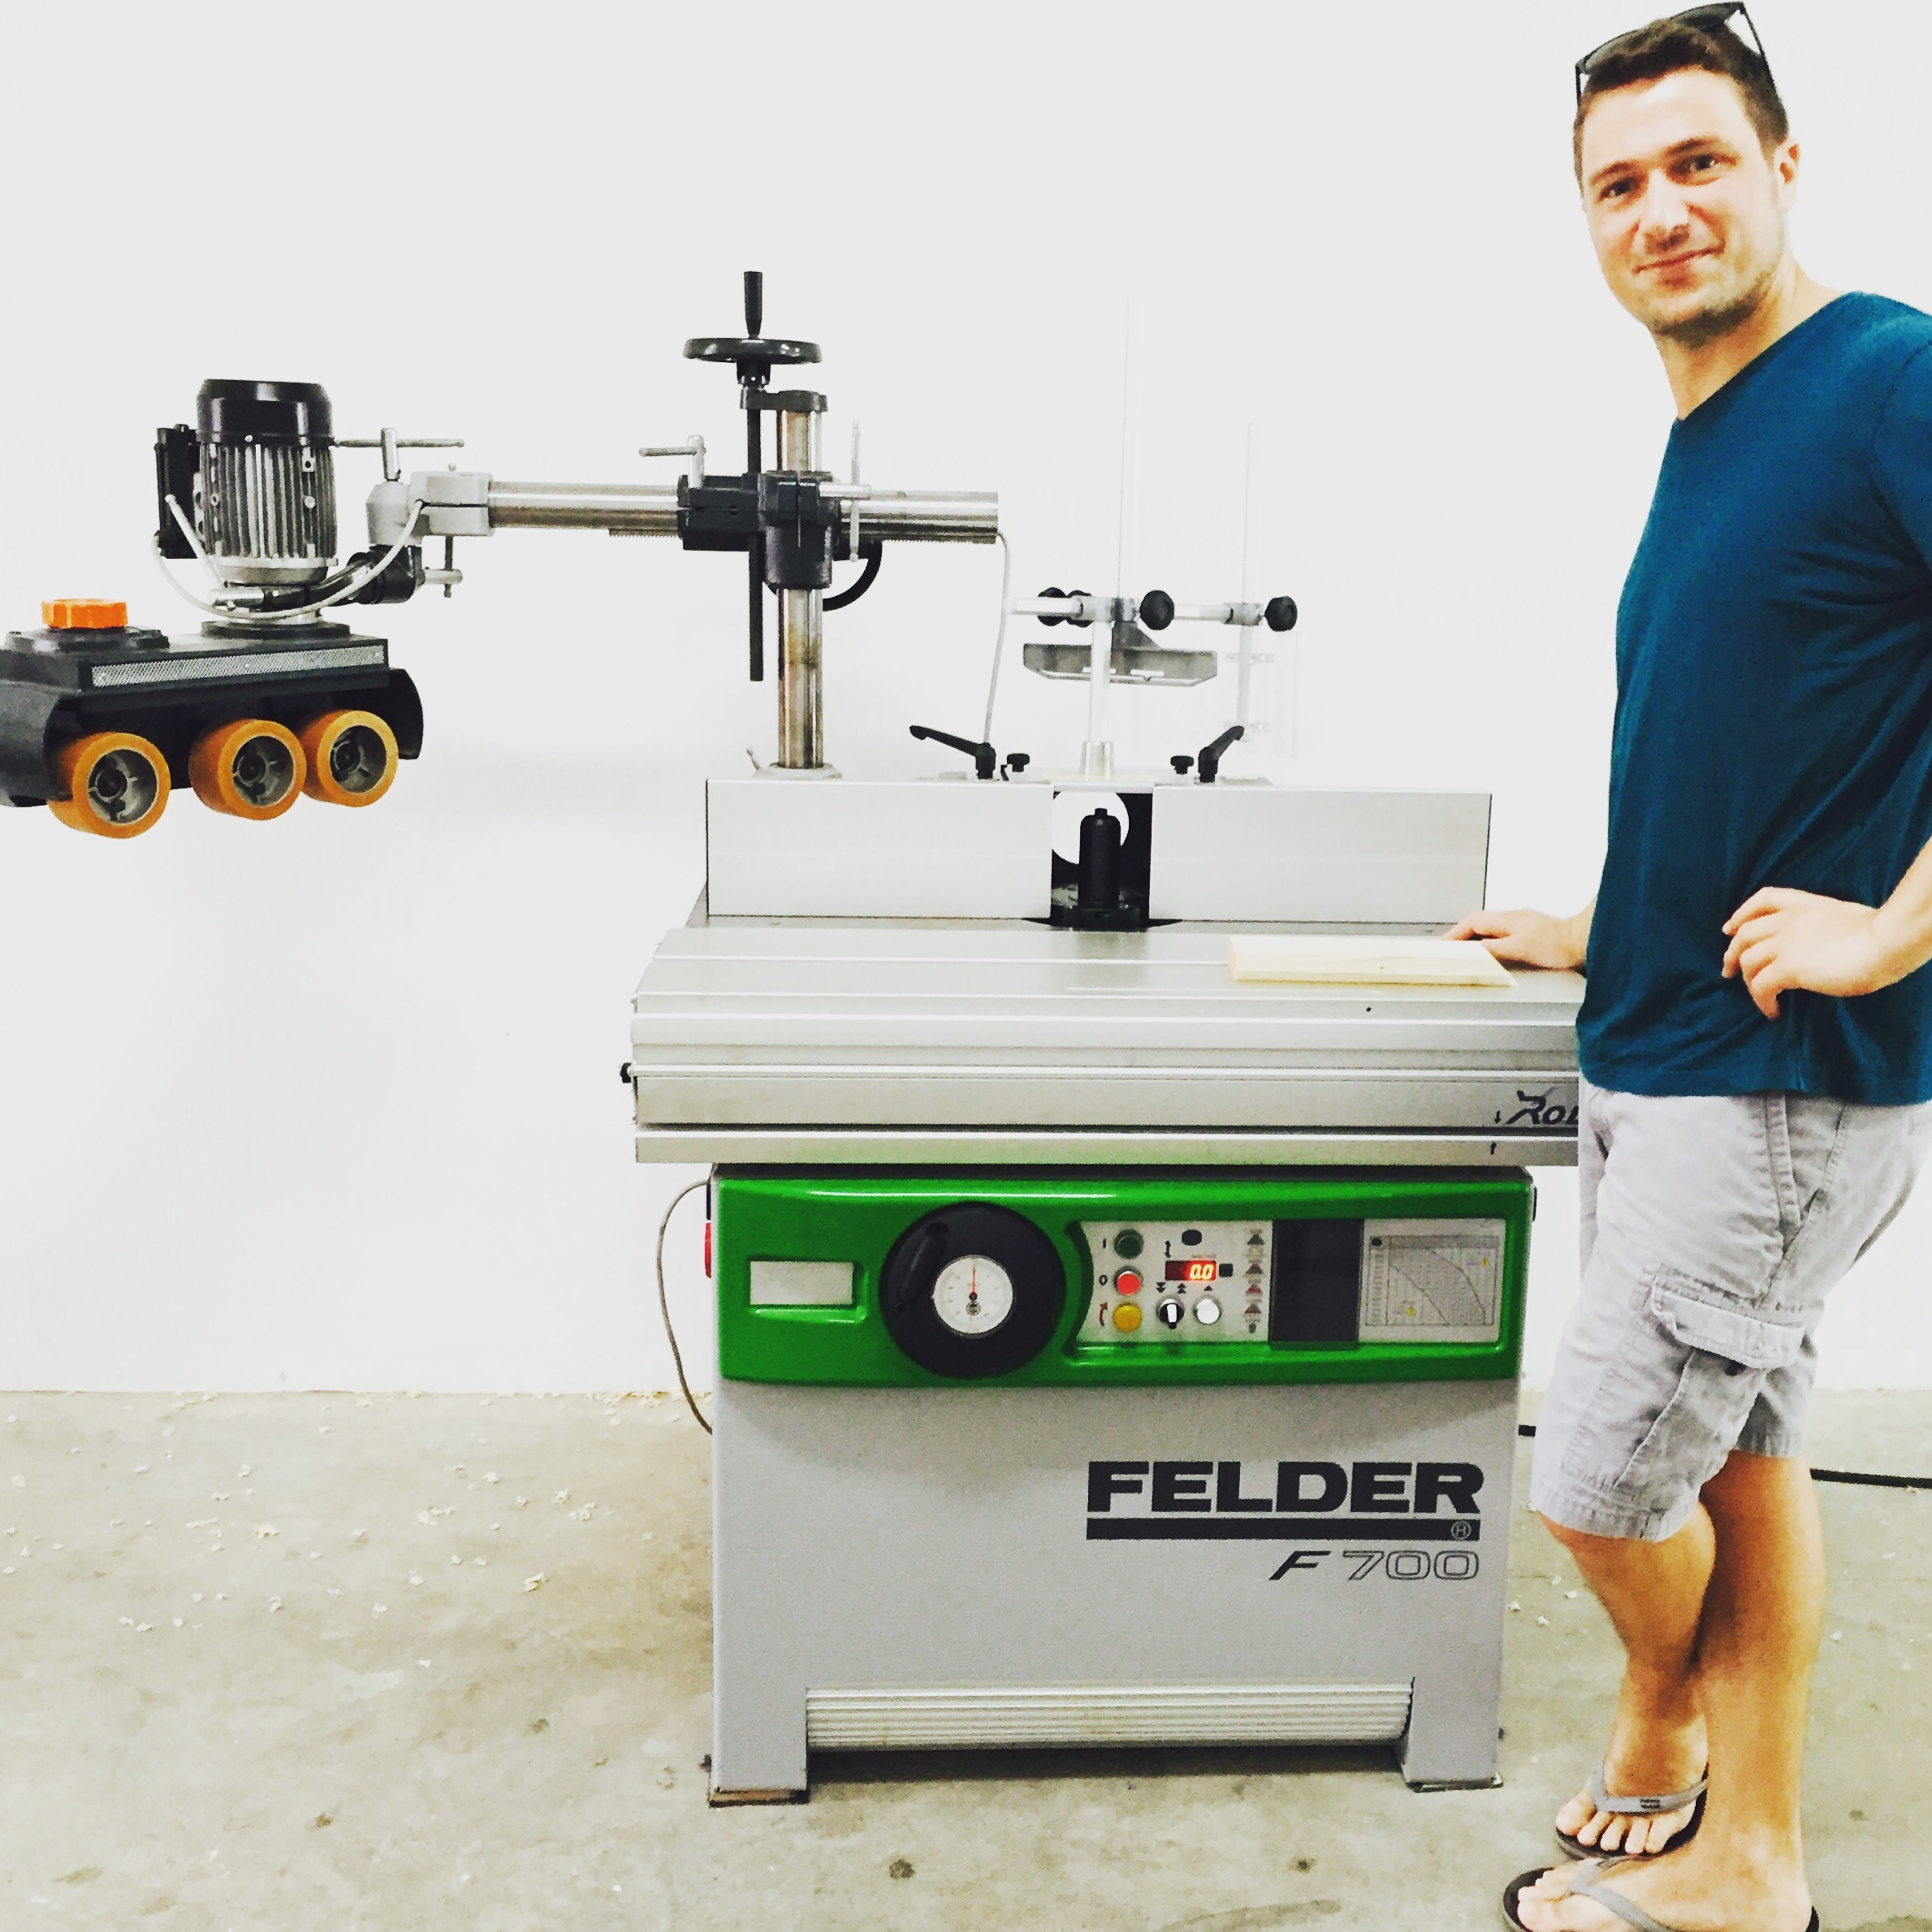 This tilted spindle moulder came all the way from Germany!